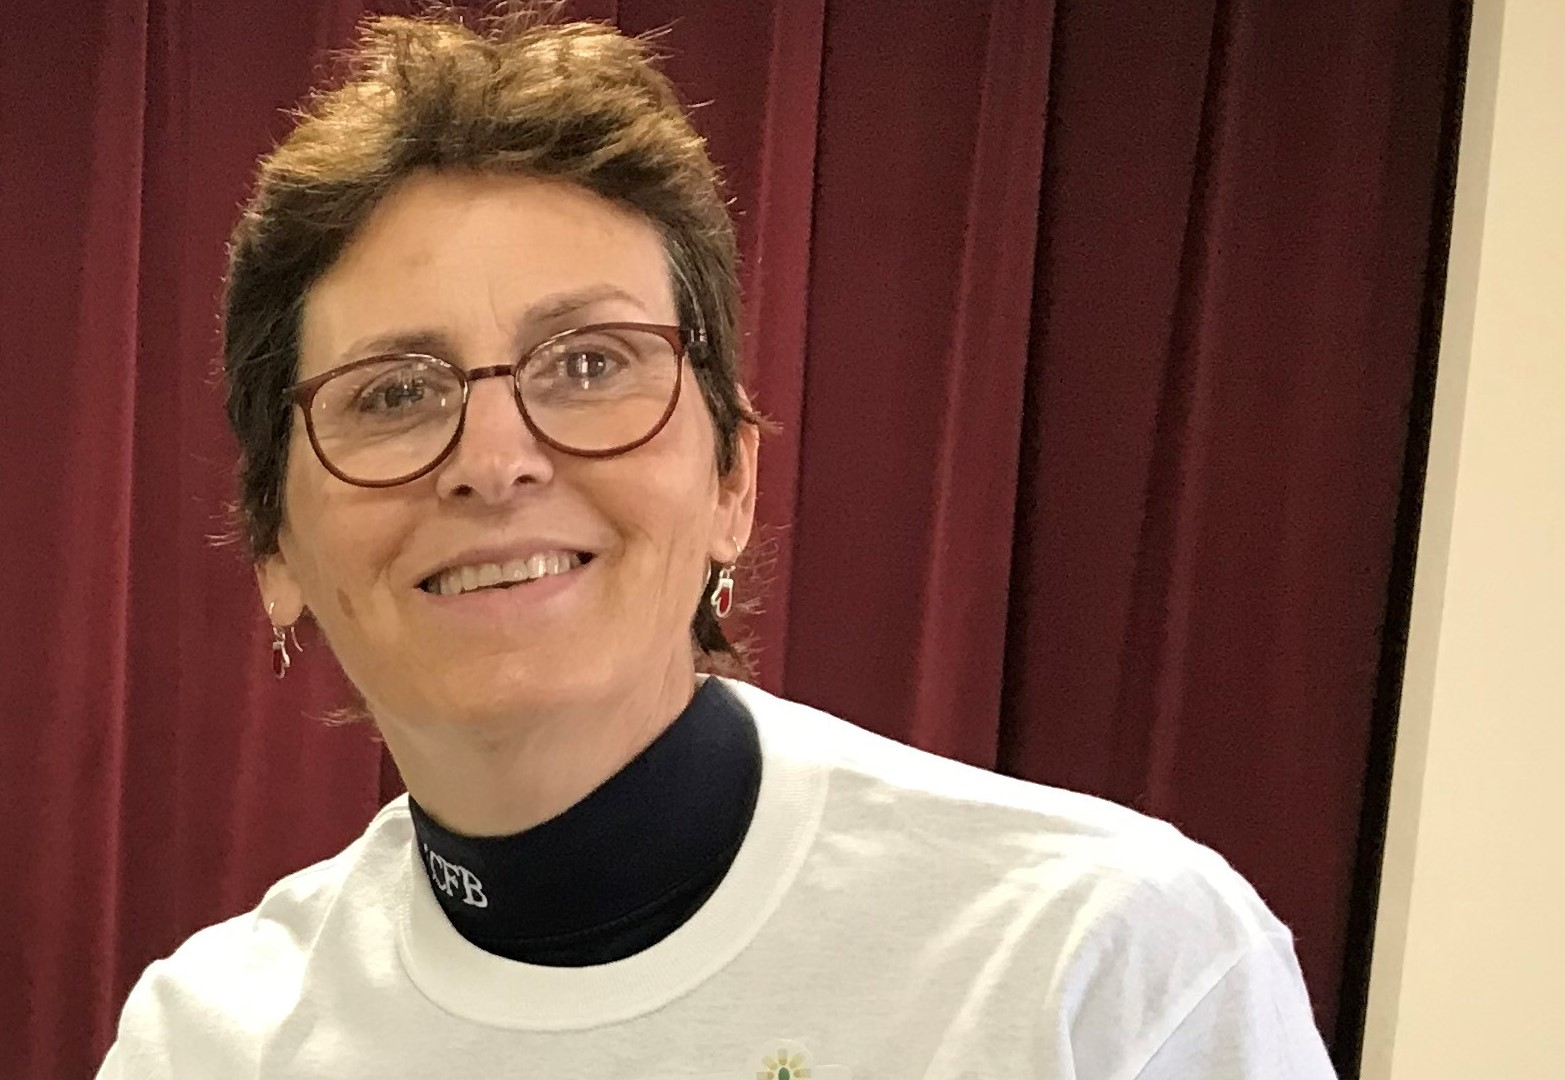 'Winds of Change' Are Upon This Longtime Employee of the Chester County Food Bank